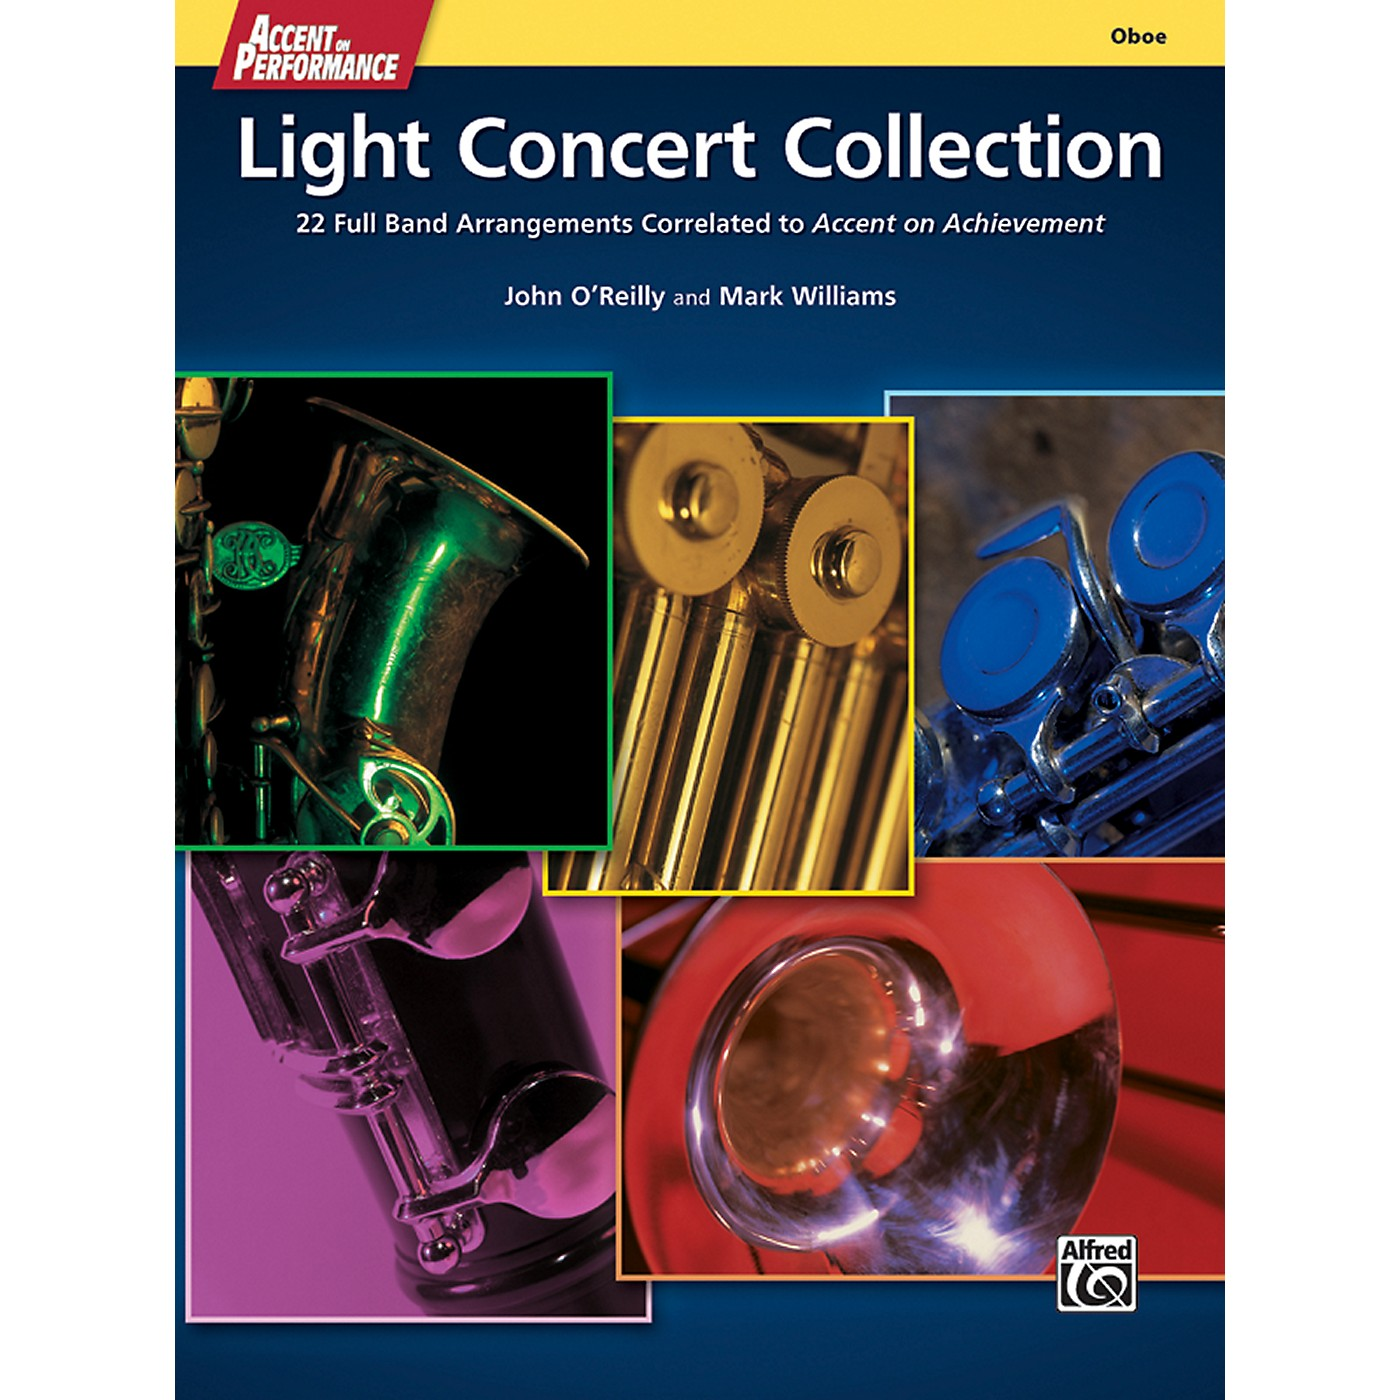 Alfred Accent on Performance Light Concert Collection Oboe Book thumbnail